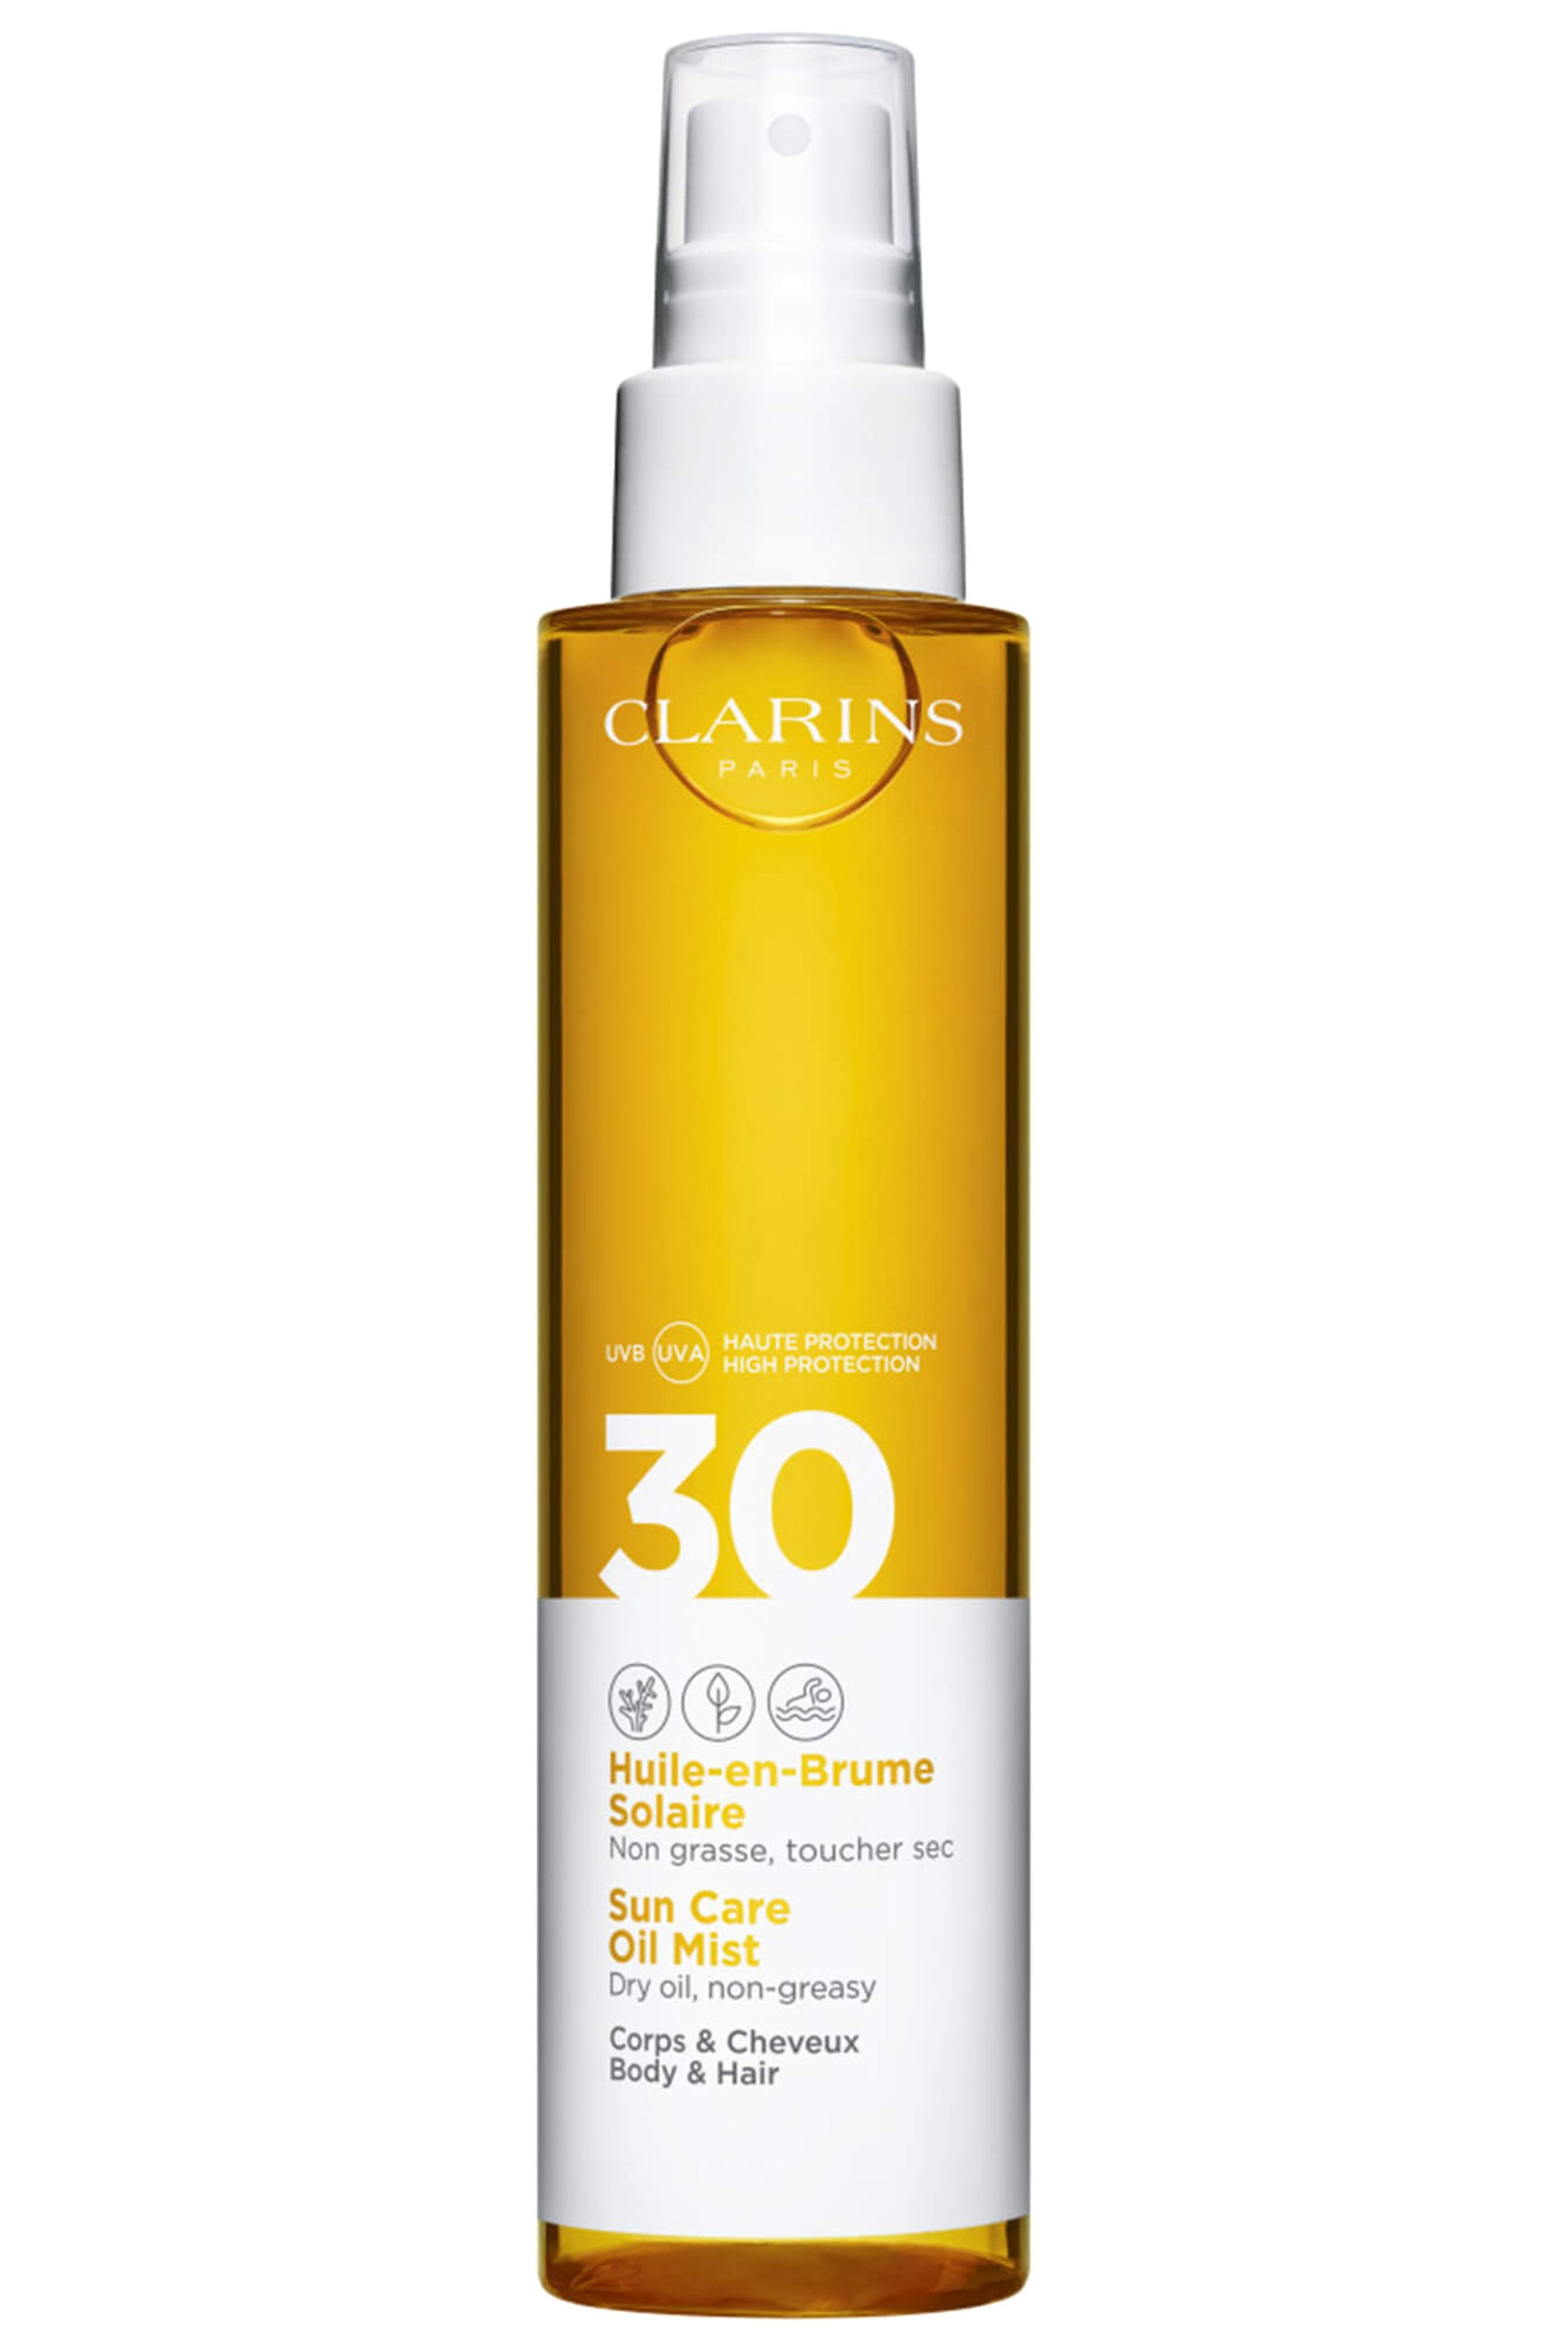 Blissim : Clarins - Huile-en-brume solaire corps UVA/UVB SPF30 - Huile-en-brume solaire corps UVA/UVB SPF30